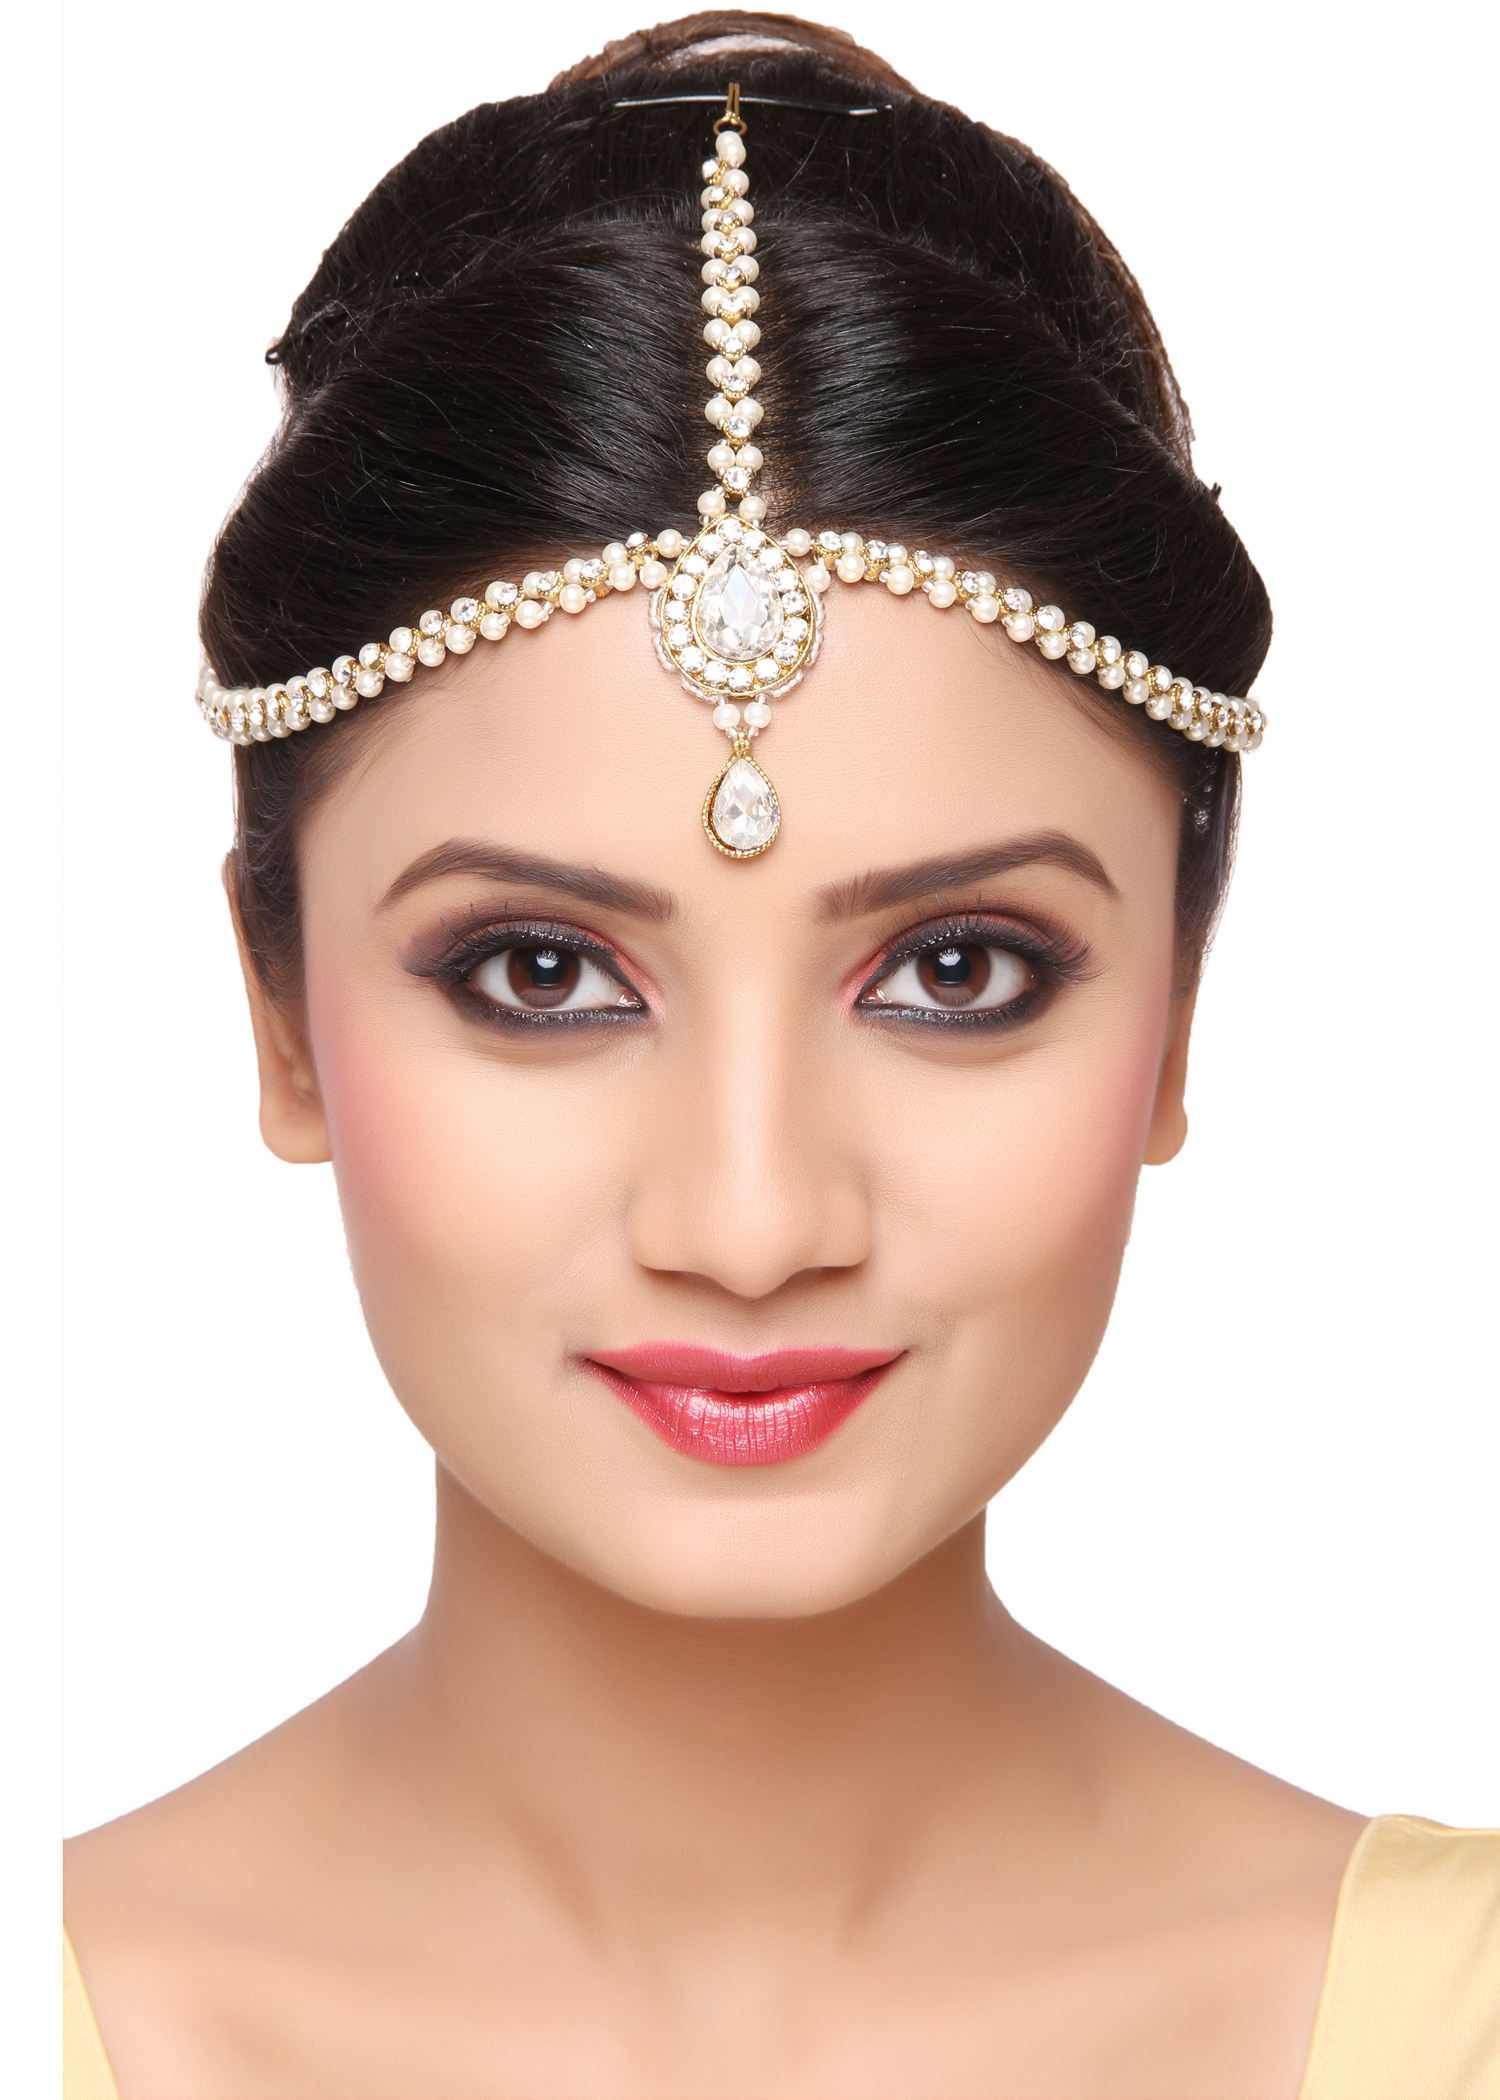 hair accessories online shop| buy bridal bobby pins, clips, bands